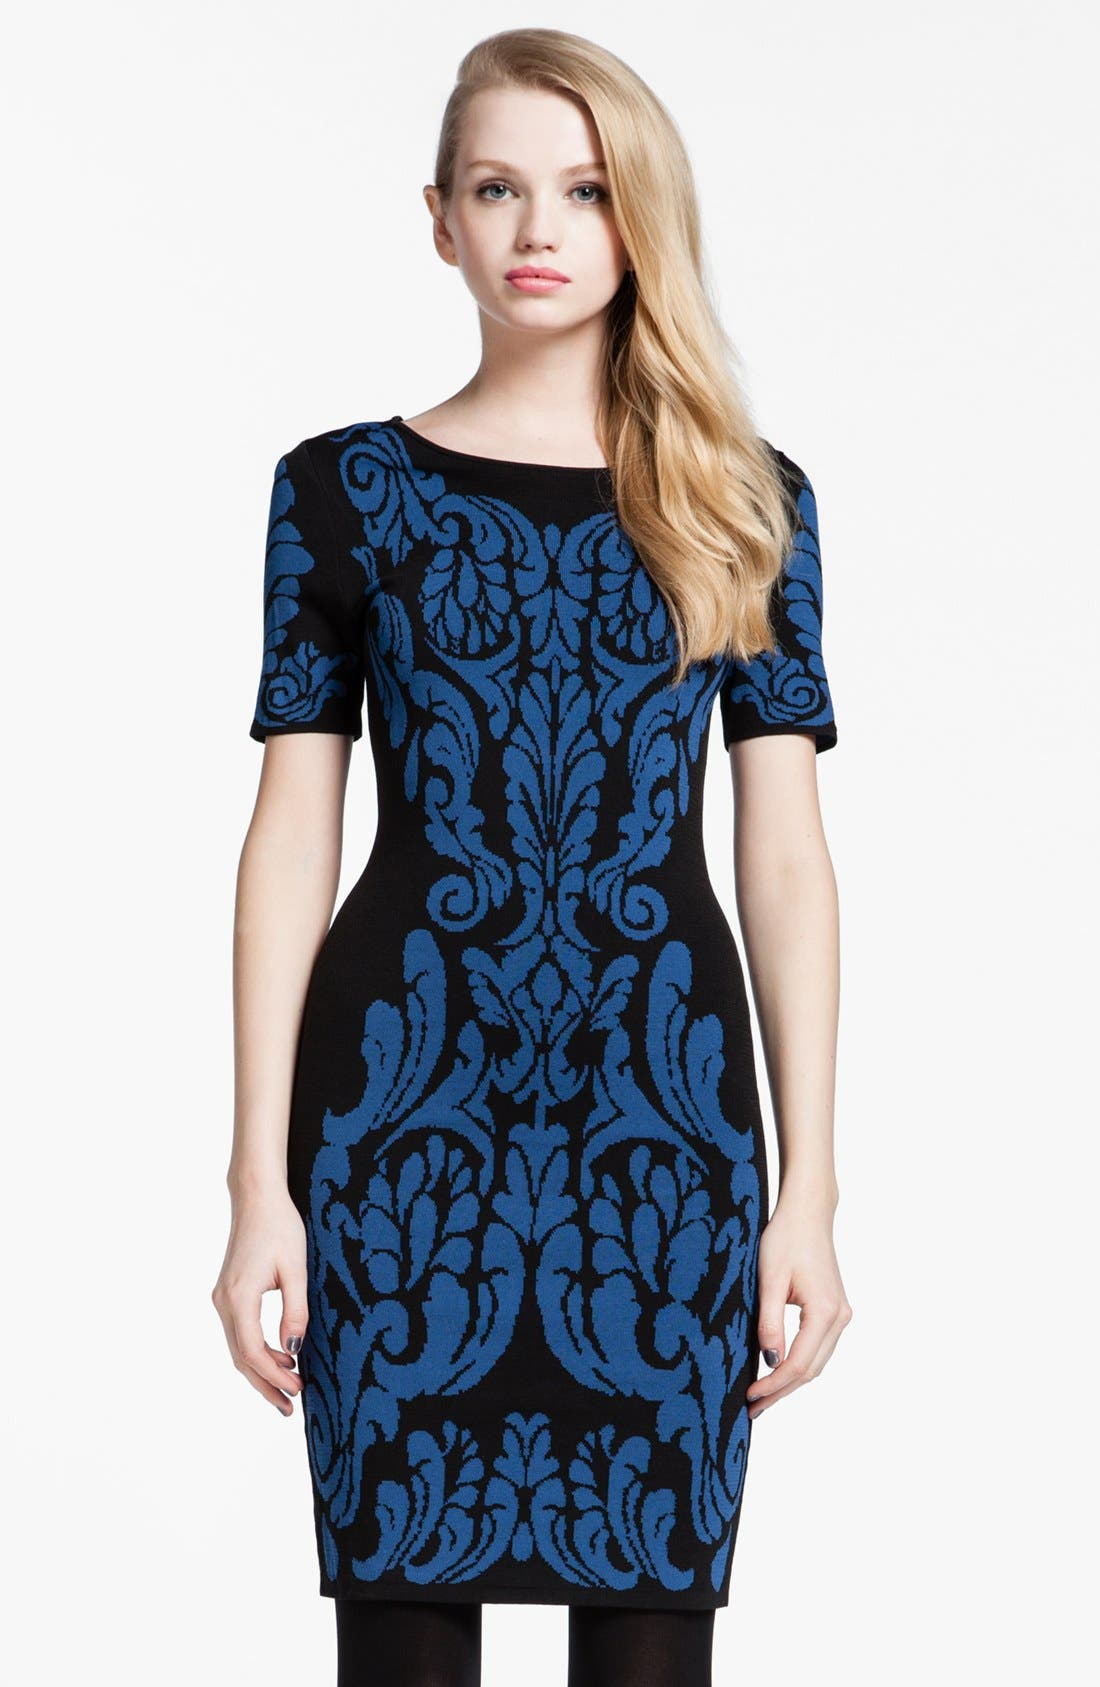 Main Image - Cynthia Steffe 'Briella' Patterned Sweater Dress